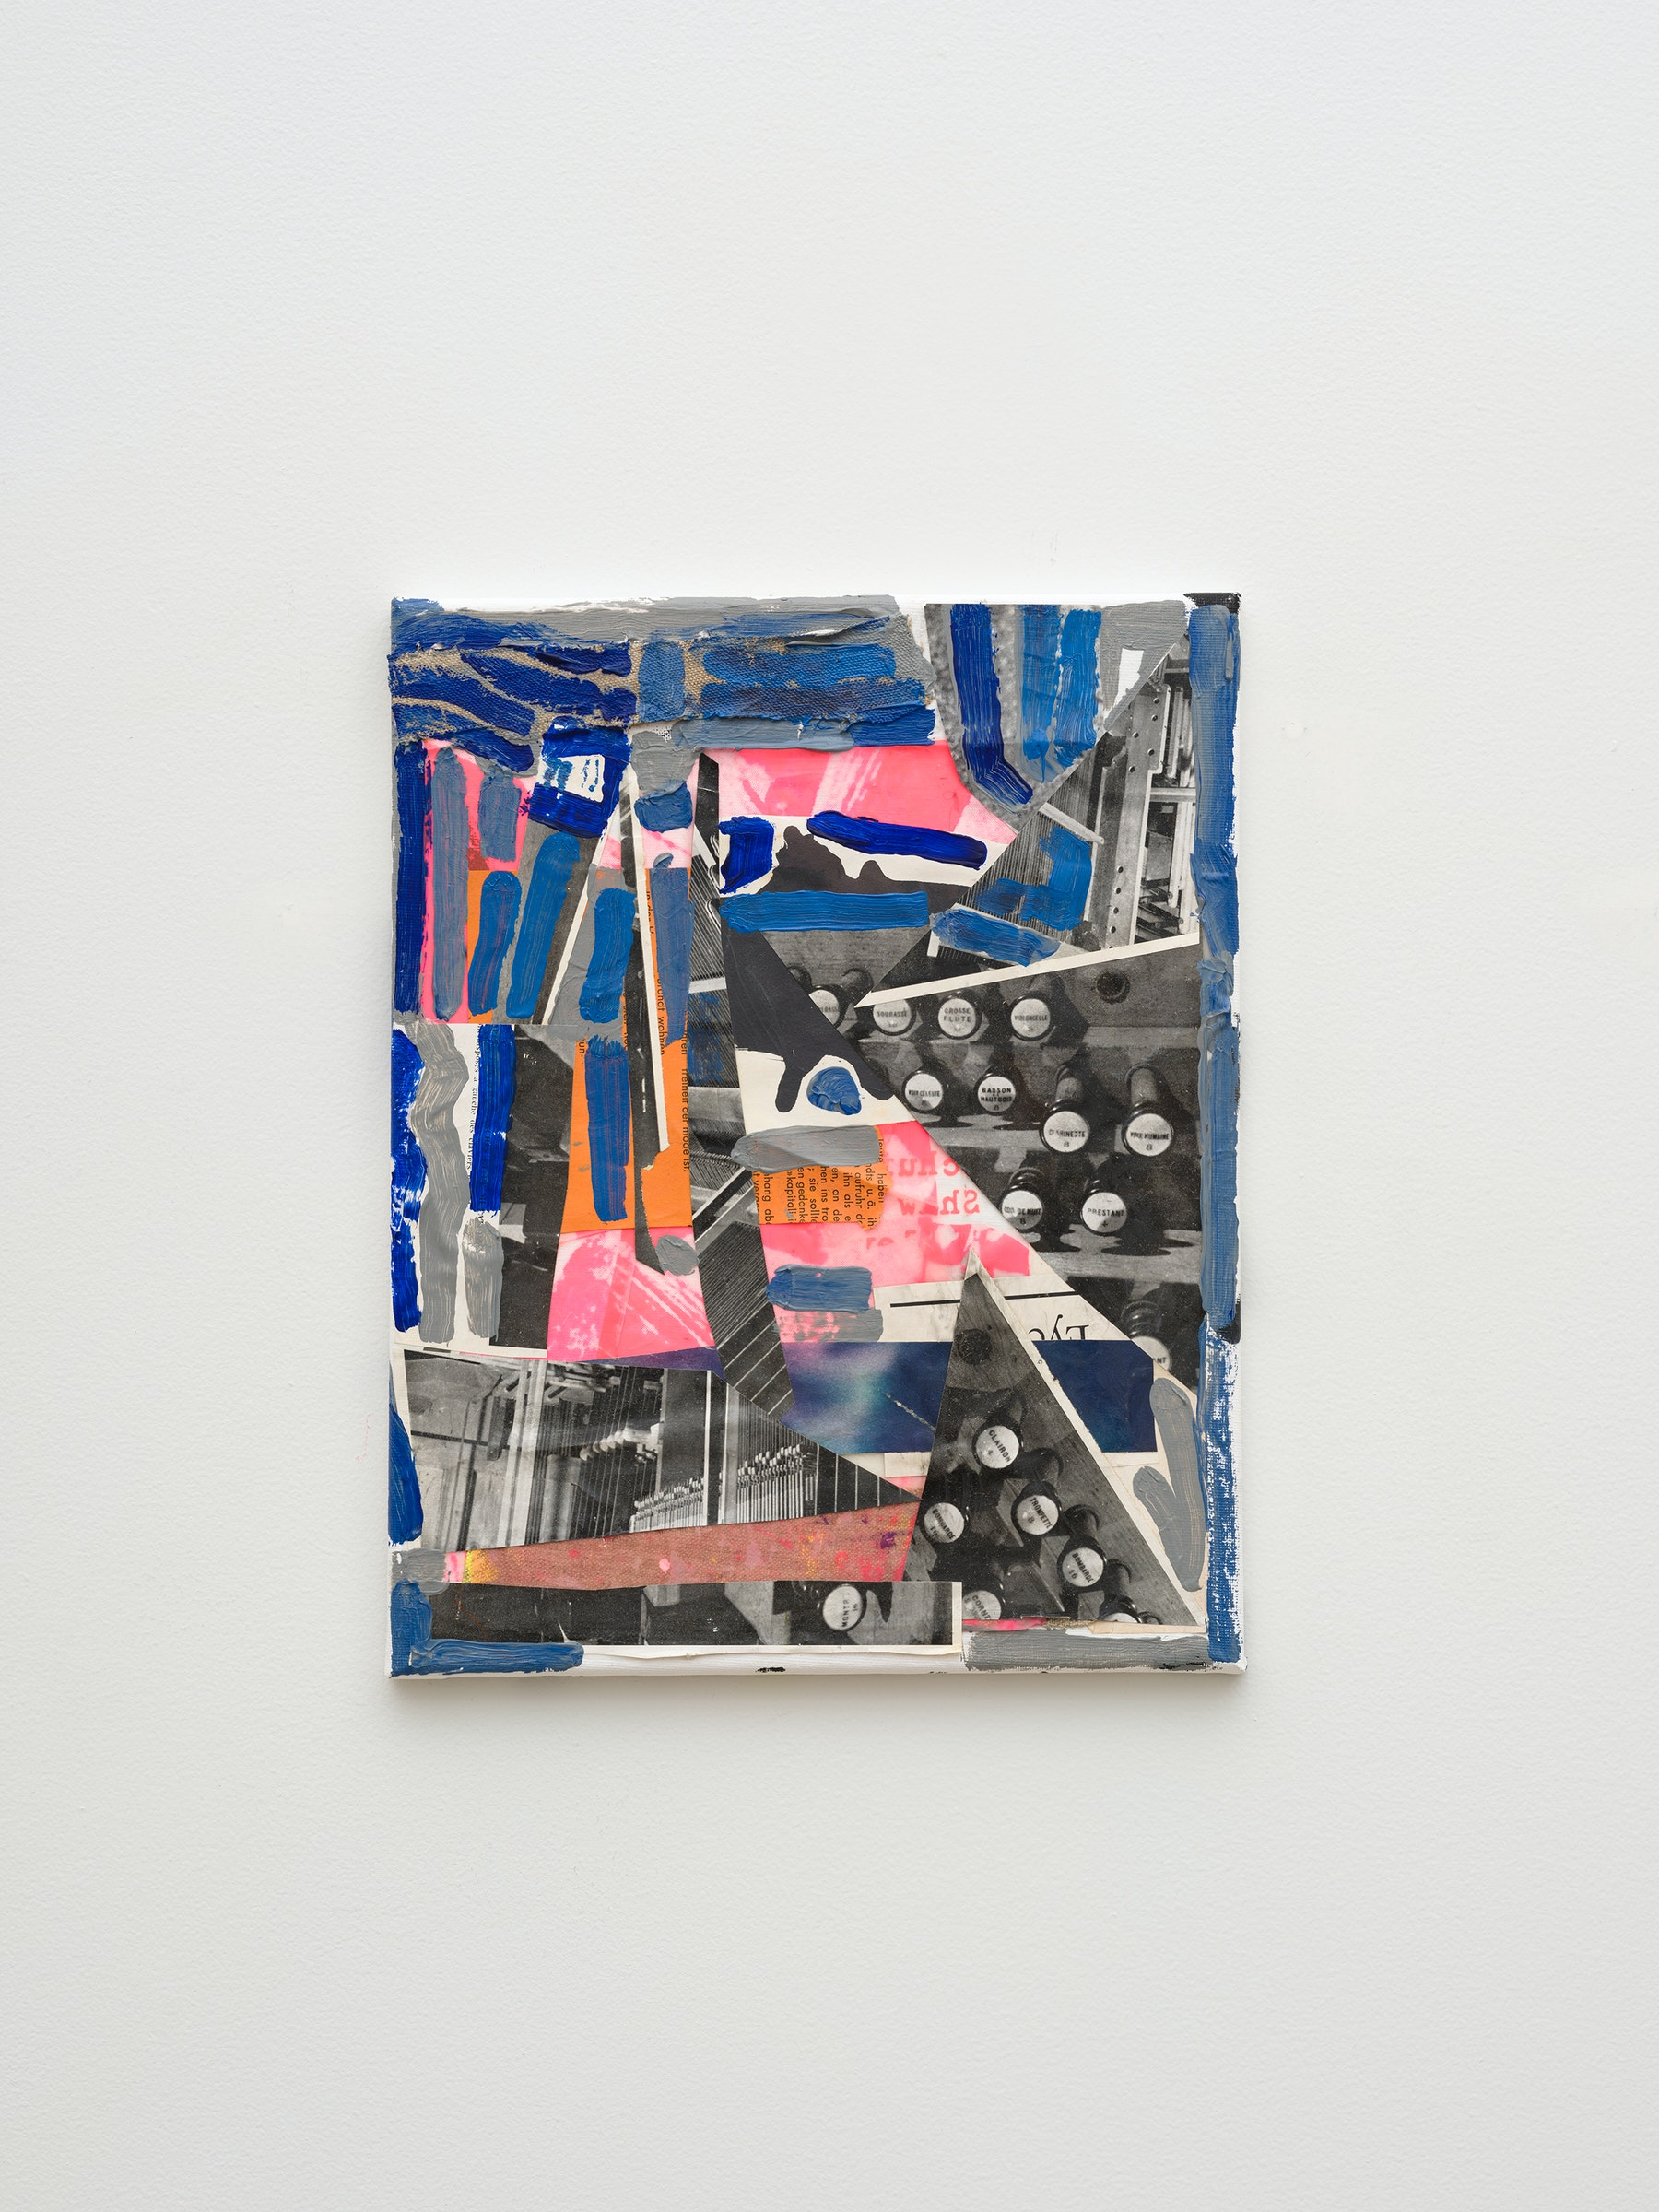 """Steve Roden """"unknown,"""" 2020 Mixed media on canvas 14"""" x 11"""" x 1"""" [HxWxD] (35.56 x 27.94 x 2.54 cm) Inventory #ROD707 Courtesy of the artist and Vielmetter Los Angeles Photo credit: Jeff McLane Signed and dated on the back"""